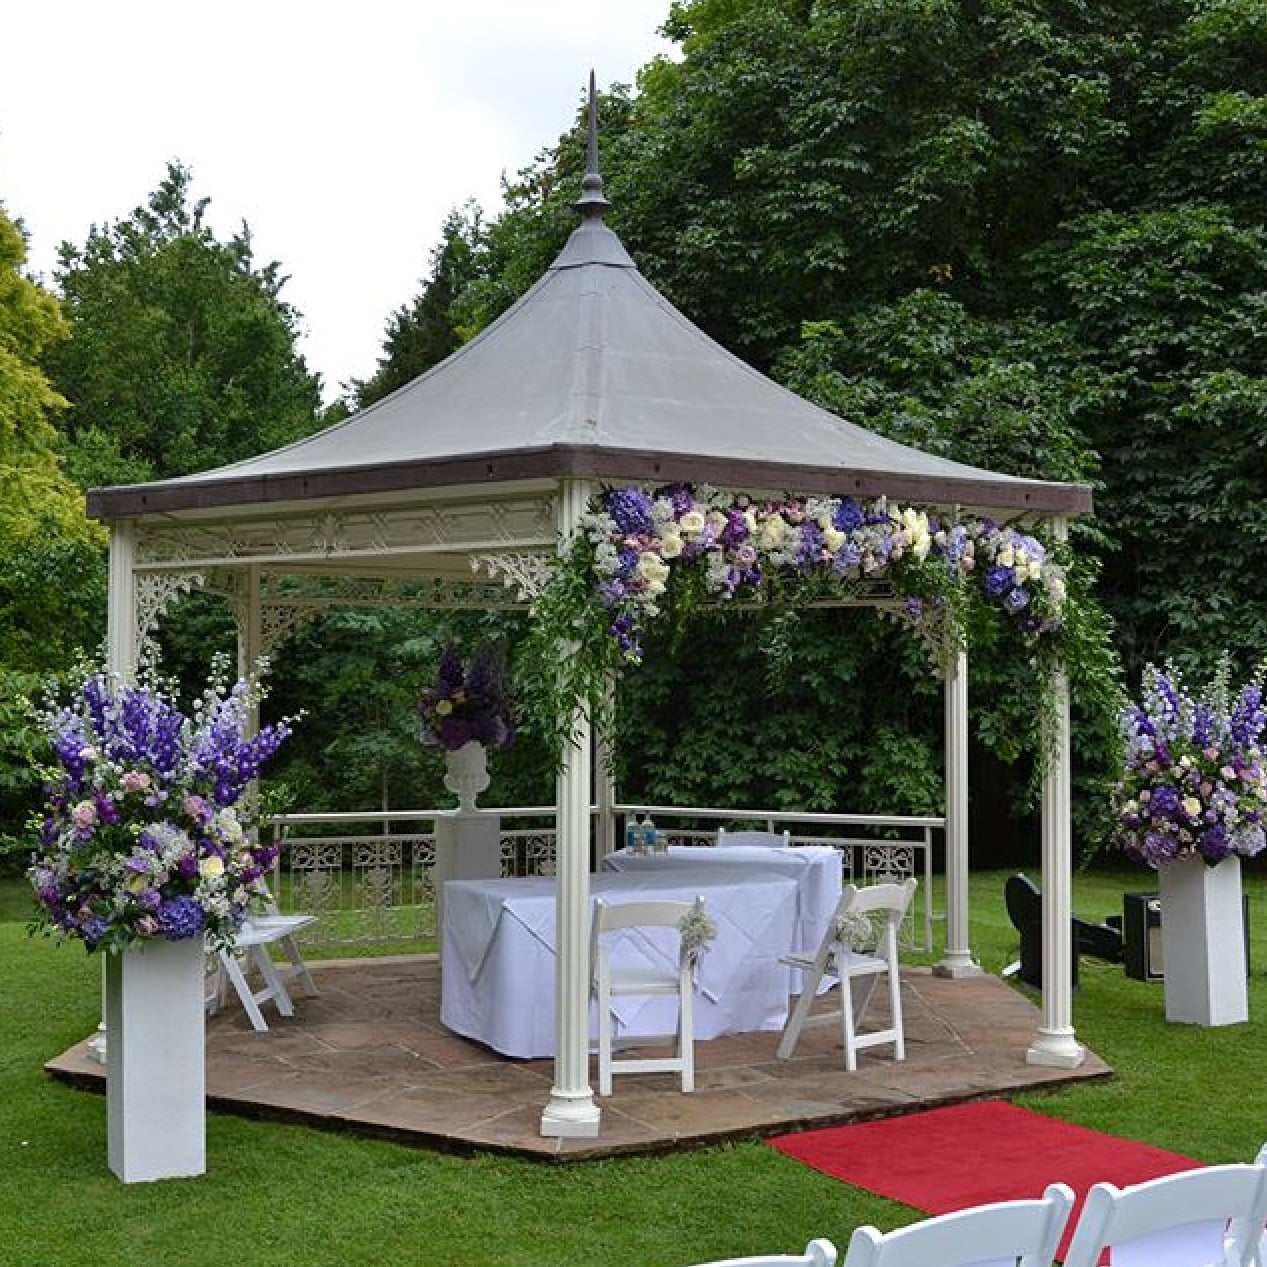 Outdoor Wedding Ceremony by Blomster Designs & Outdoor Wedding Ceremony by Blomster Designs - Meijer Roses